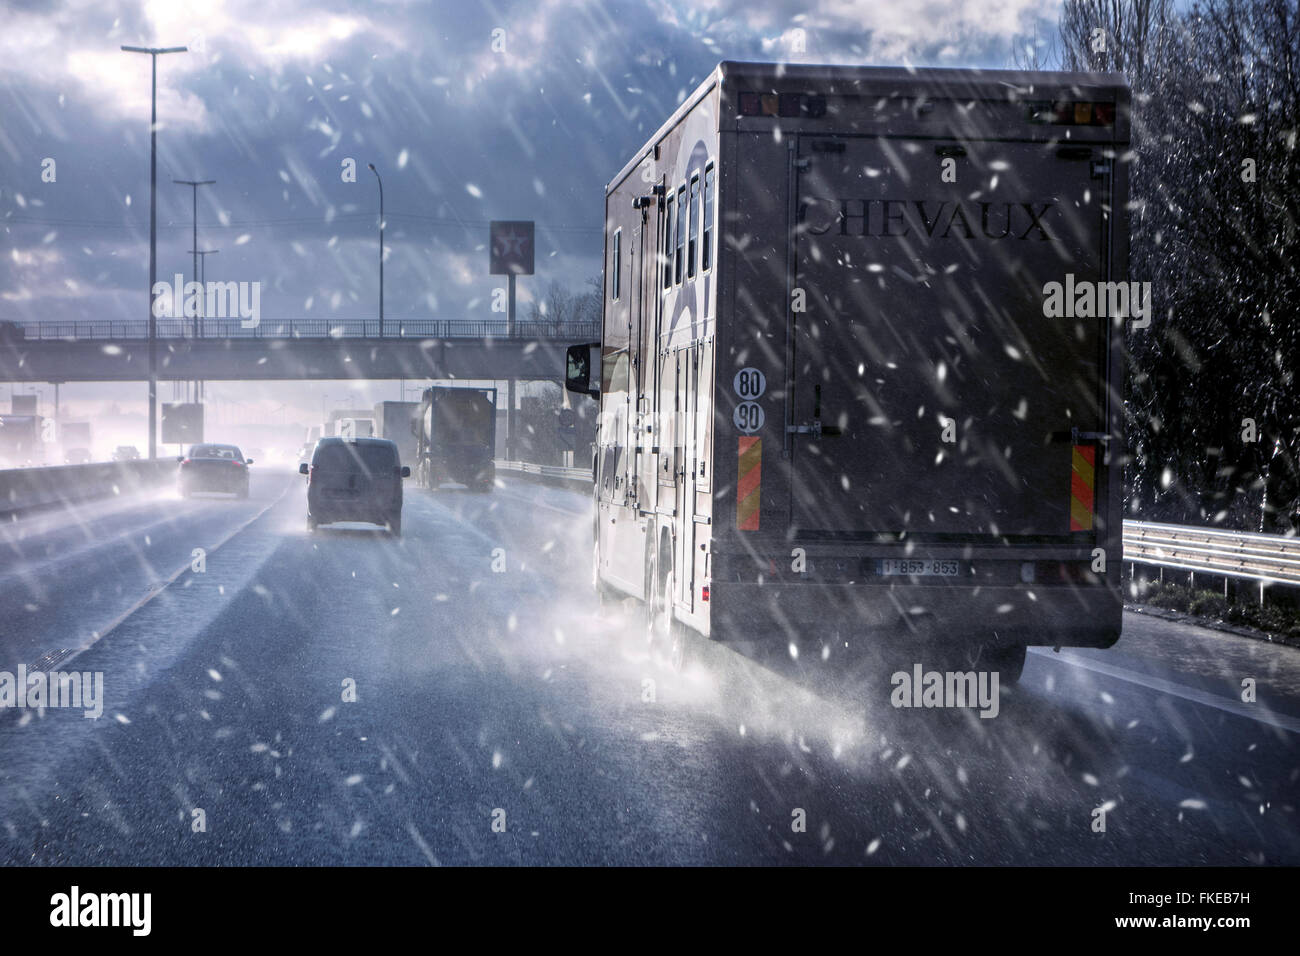 Cars and trucks driving on highway during sleet causing dangerous wintry wet road conditions in winter / spring - Stock Image